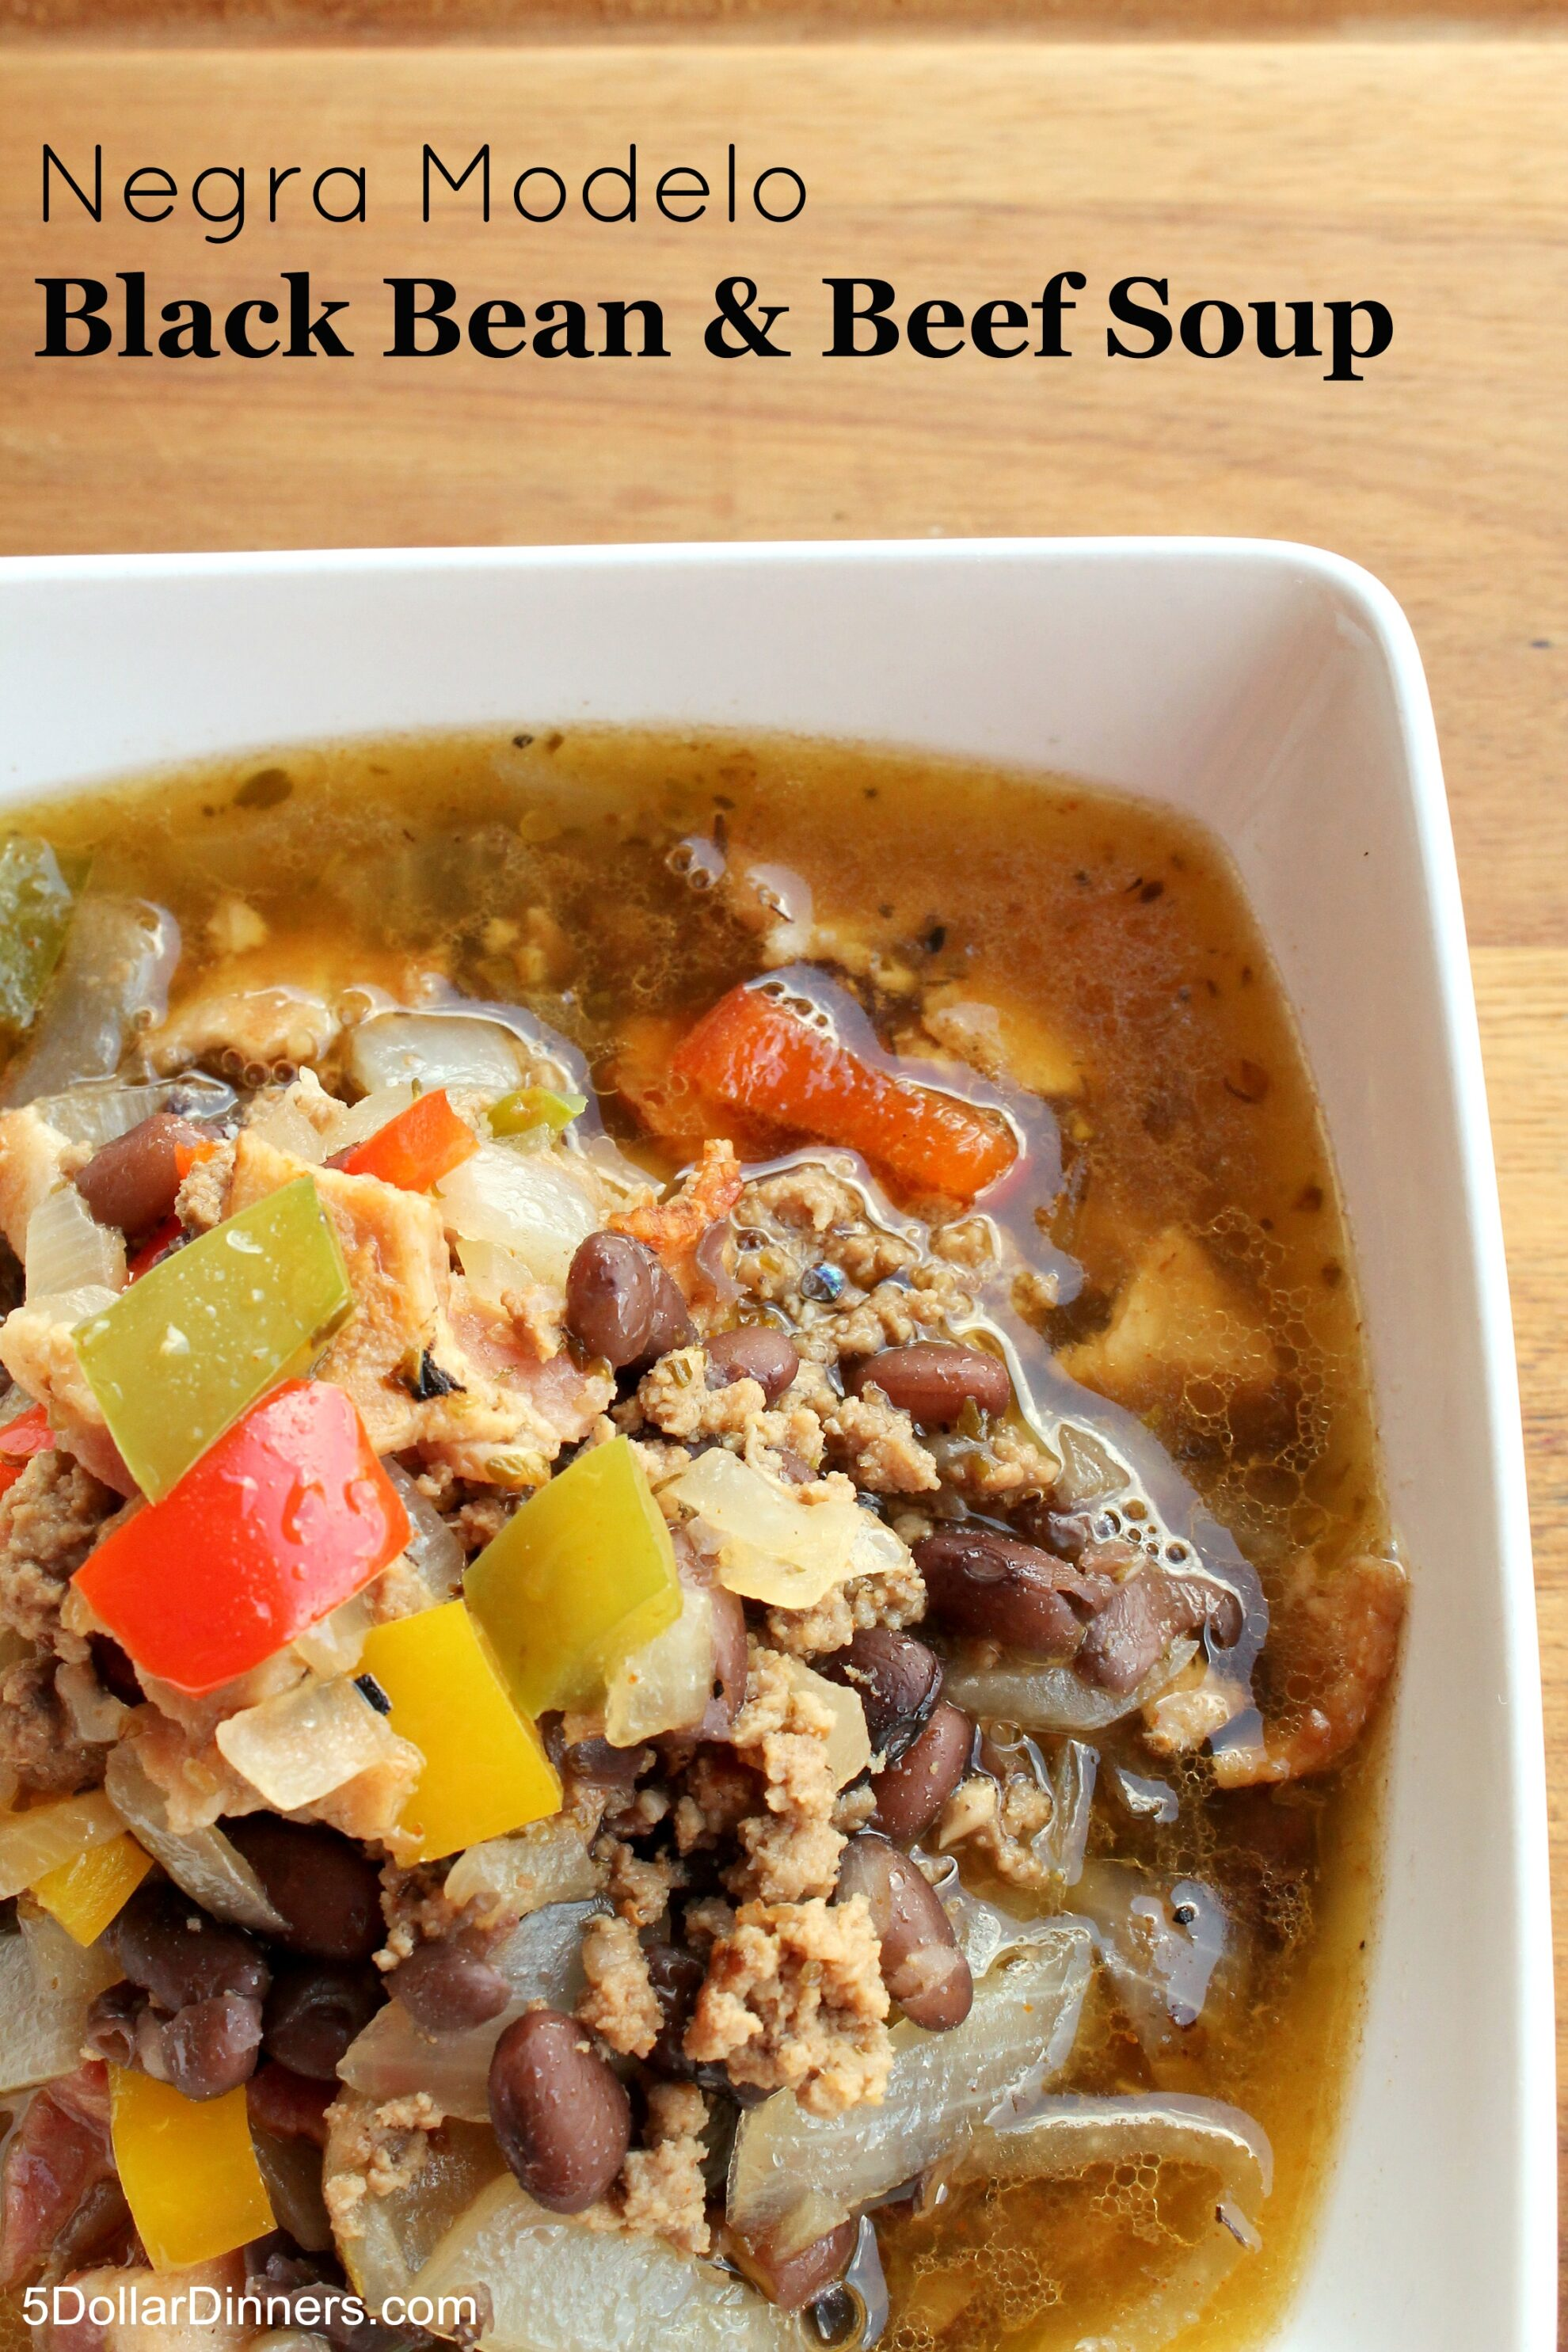 Negra Modelo Black Bean and Beef Soup from 5DollarDinners.com